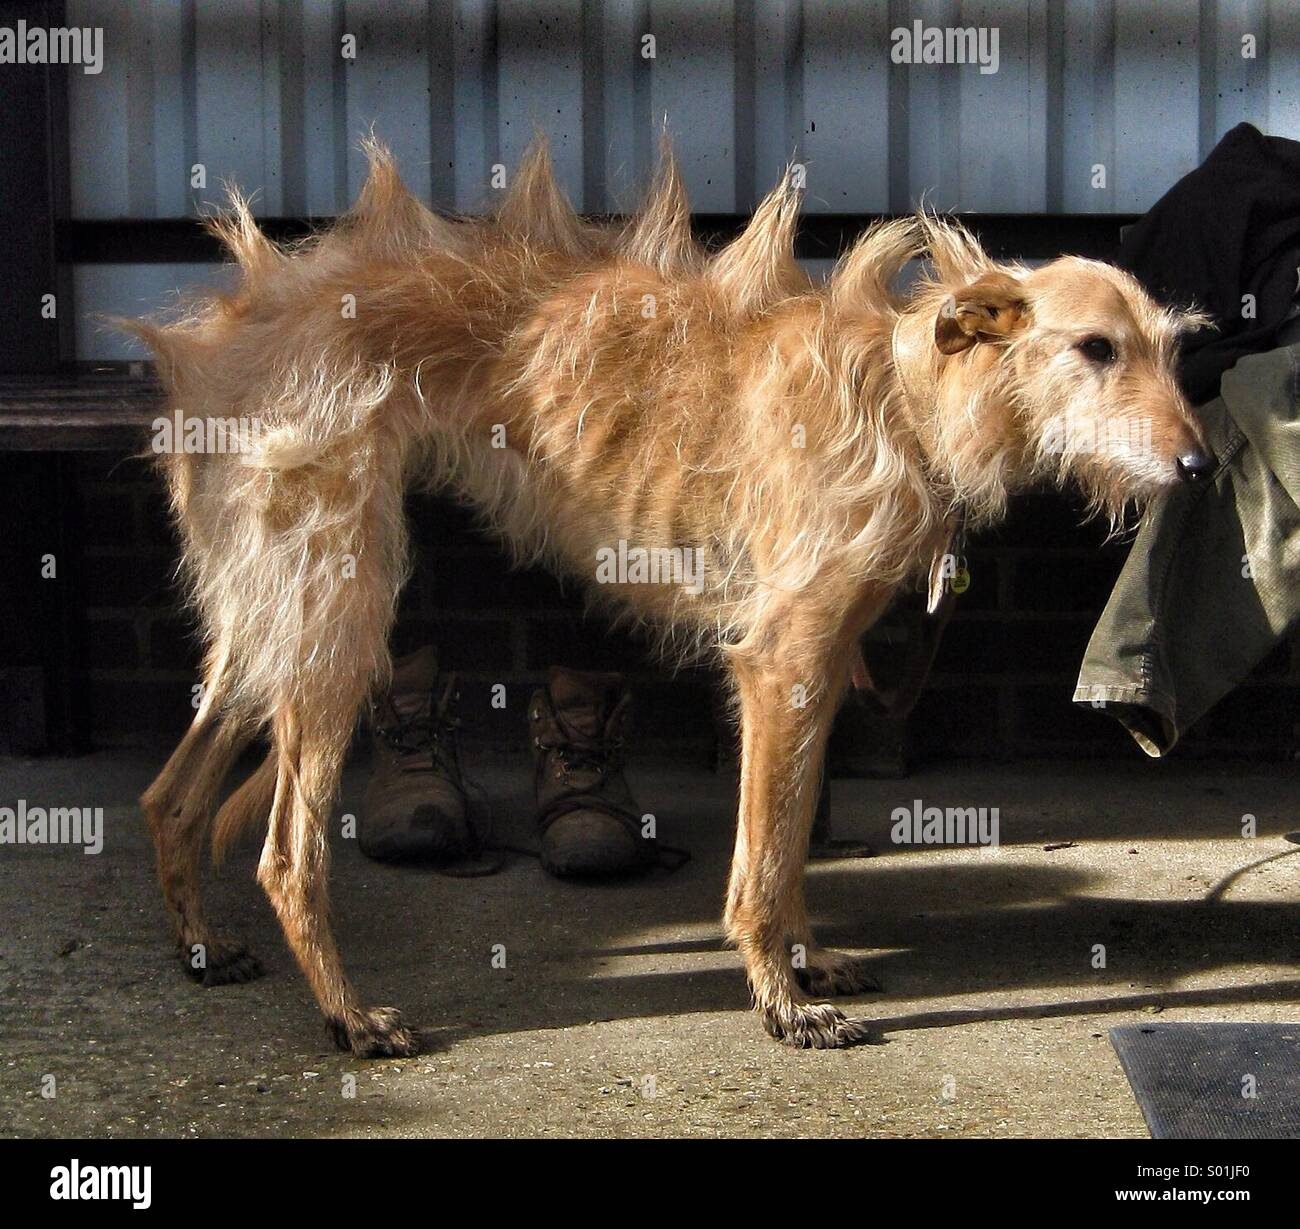 A lurcher dog with long hair formed into spines along its back. - Stock Image